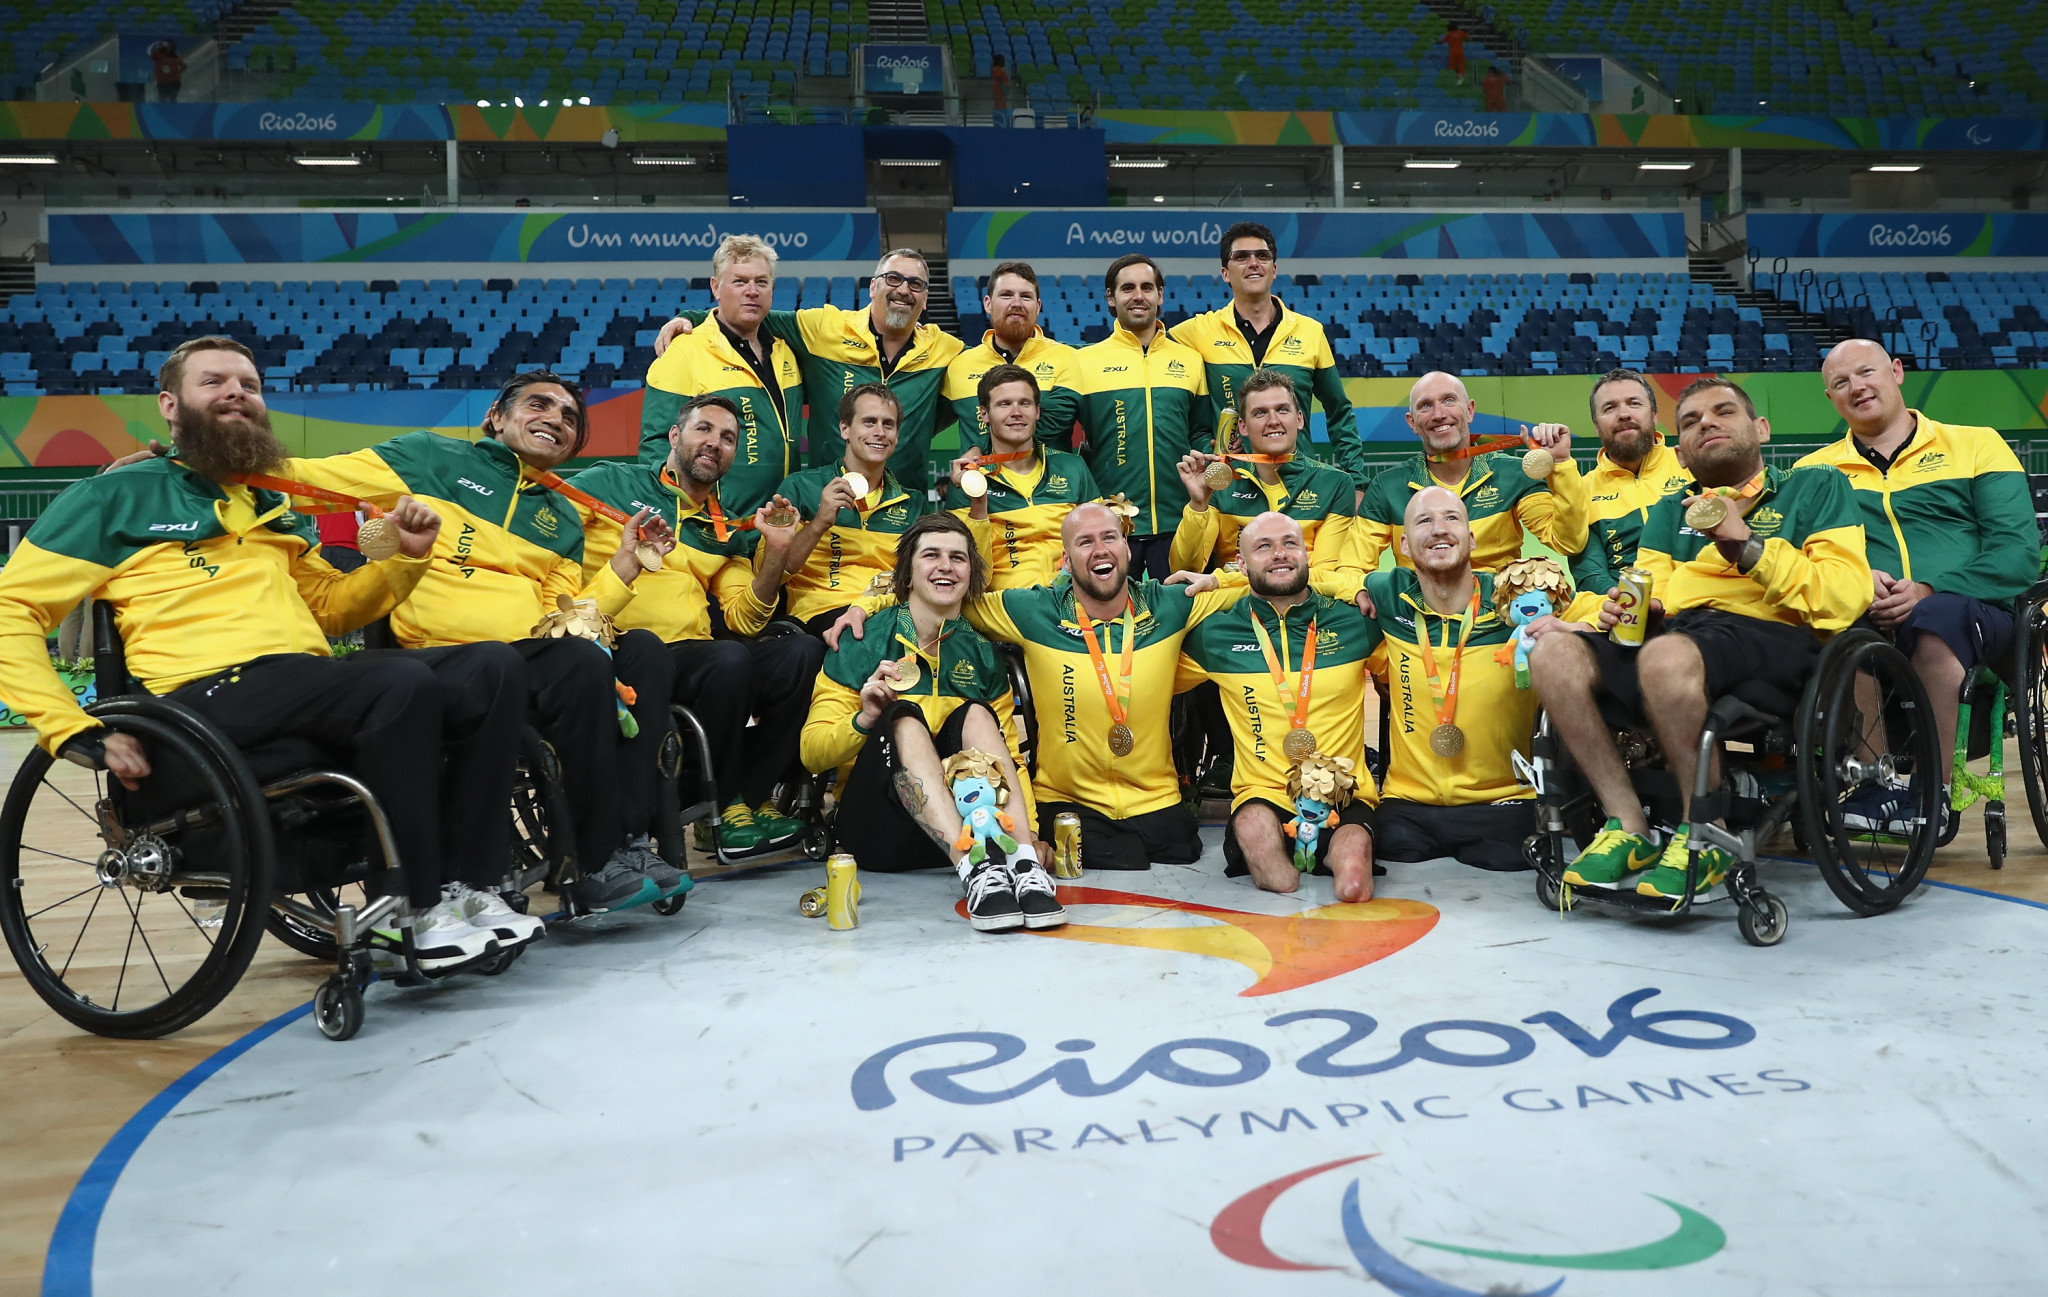 Australia won Paralympic gold medals at London 2012 and 2016 and the 2014 World Championships in Odense  ©Getty Images